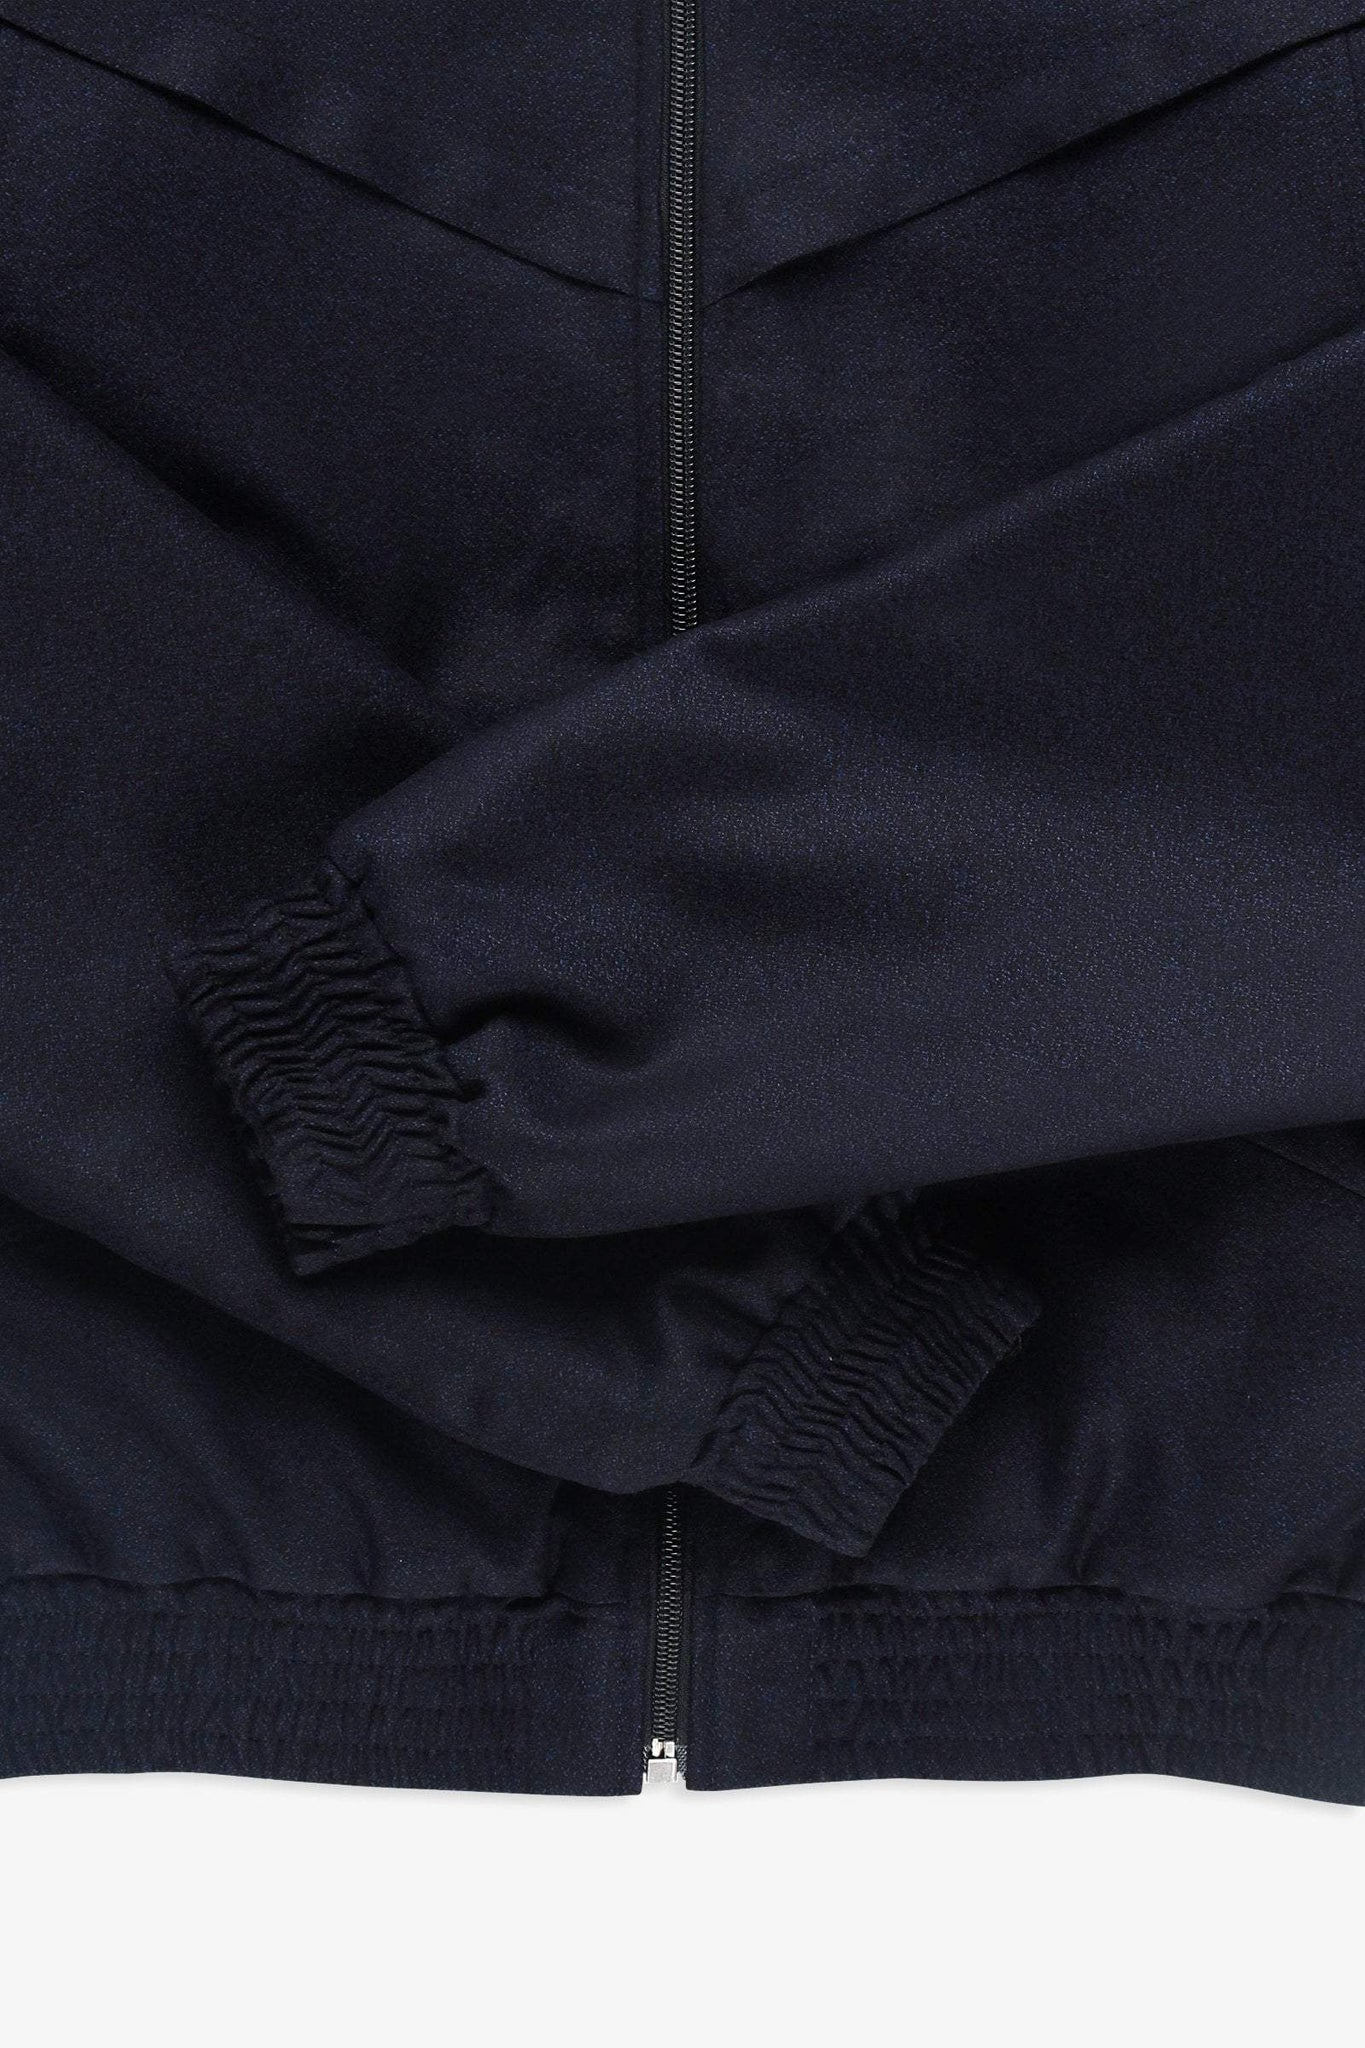 Sport zip jacket - blue black